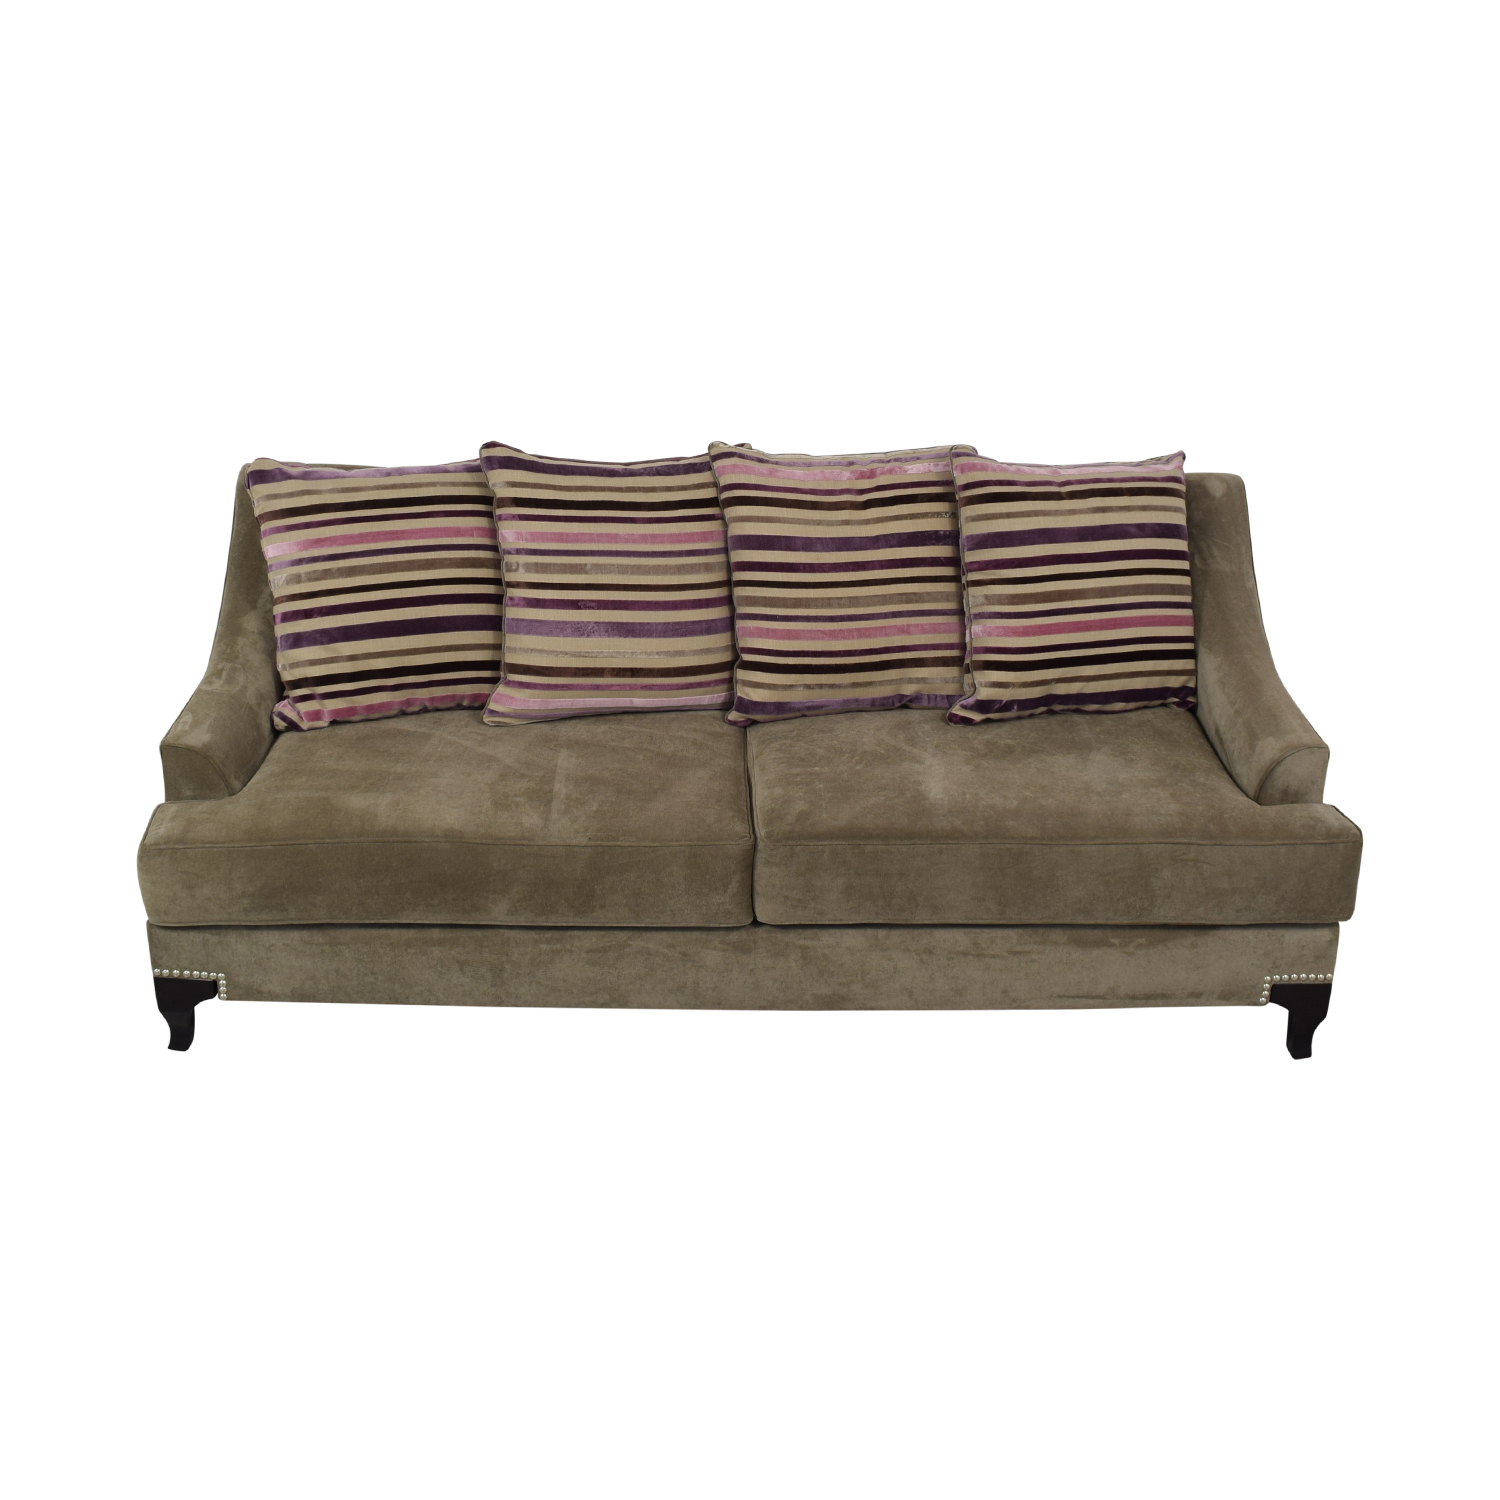 Furniture of America Furniture of America Classic Sofa Sofas